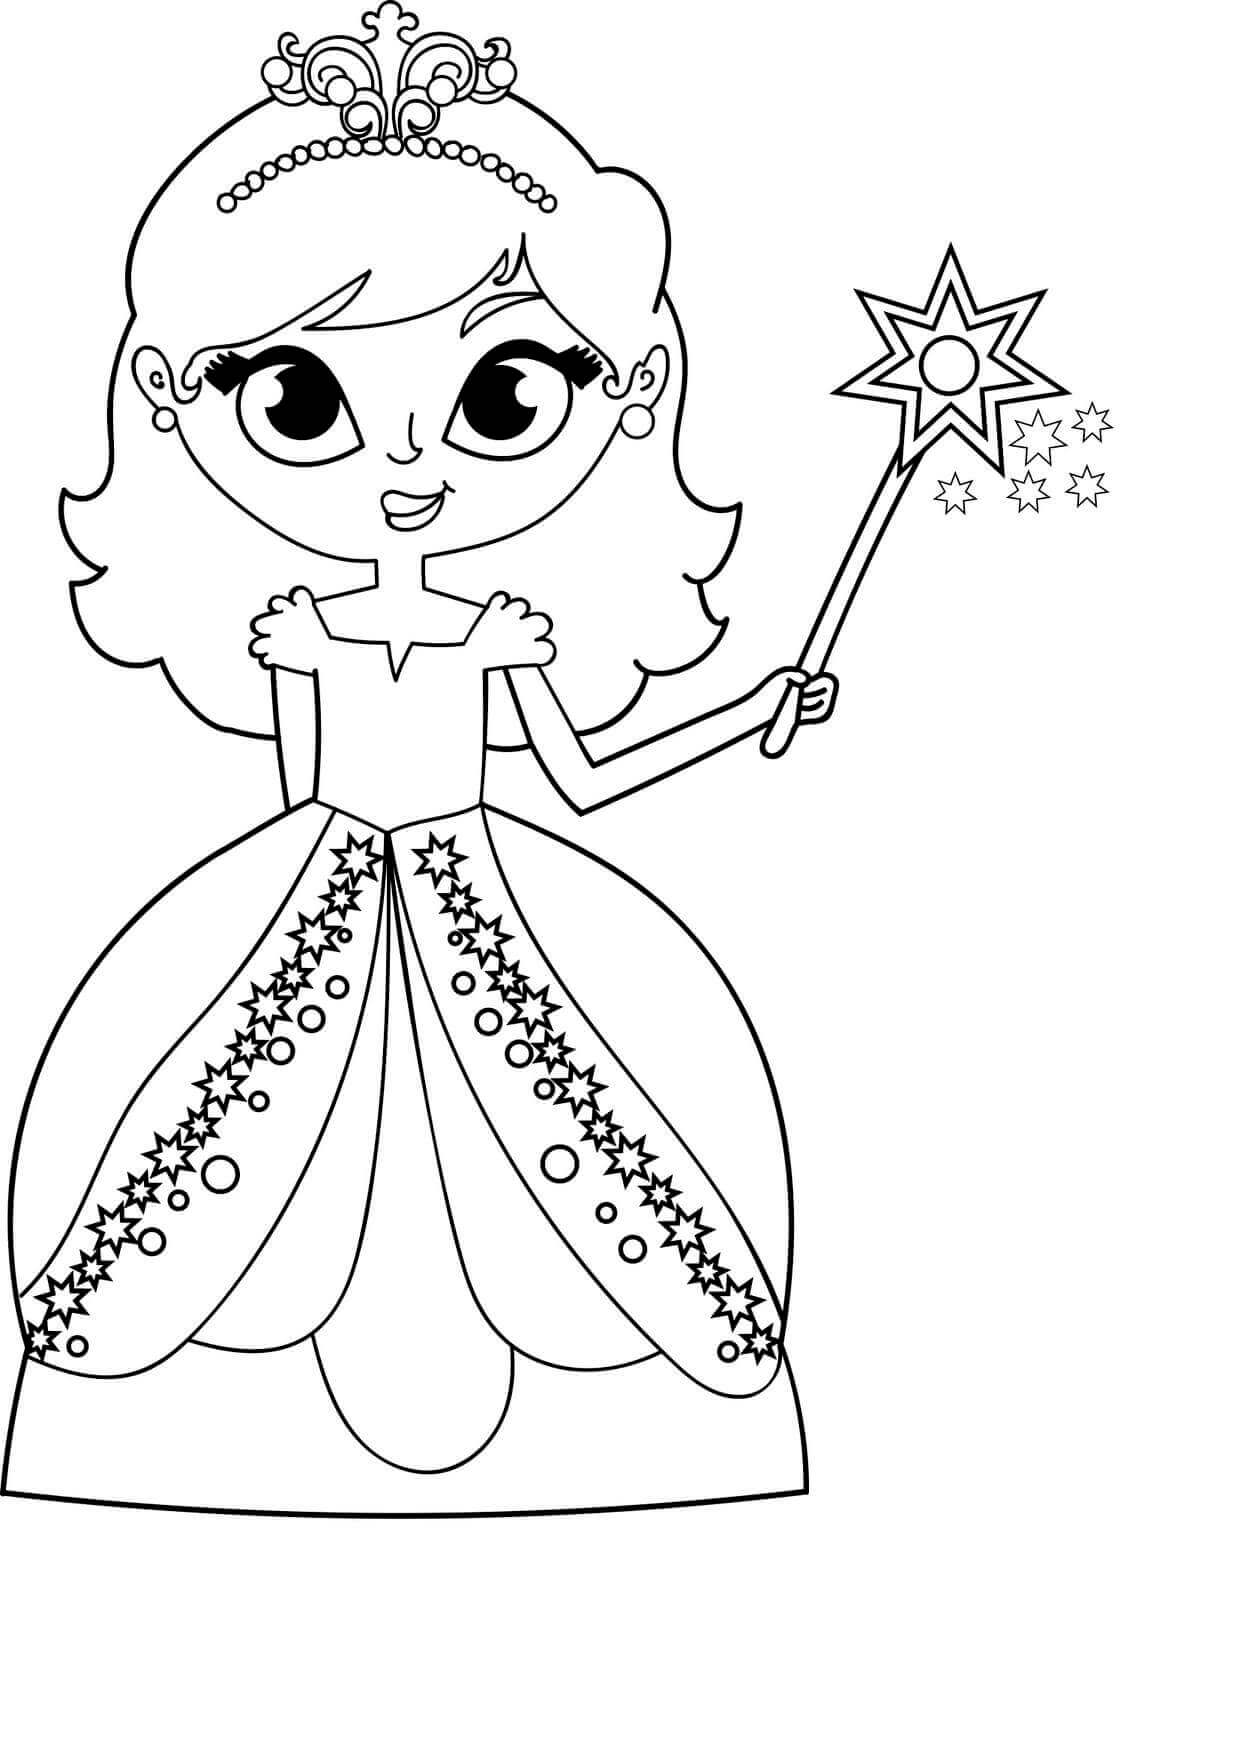 coloring girl sheets print download coloring pages for girls recommend a girl coloring sheets